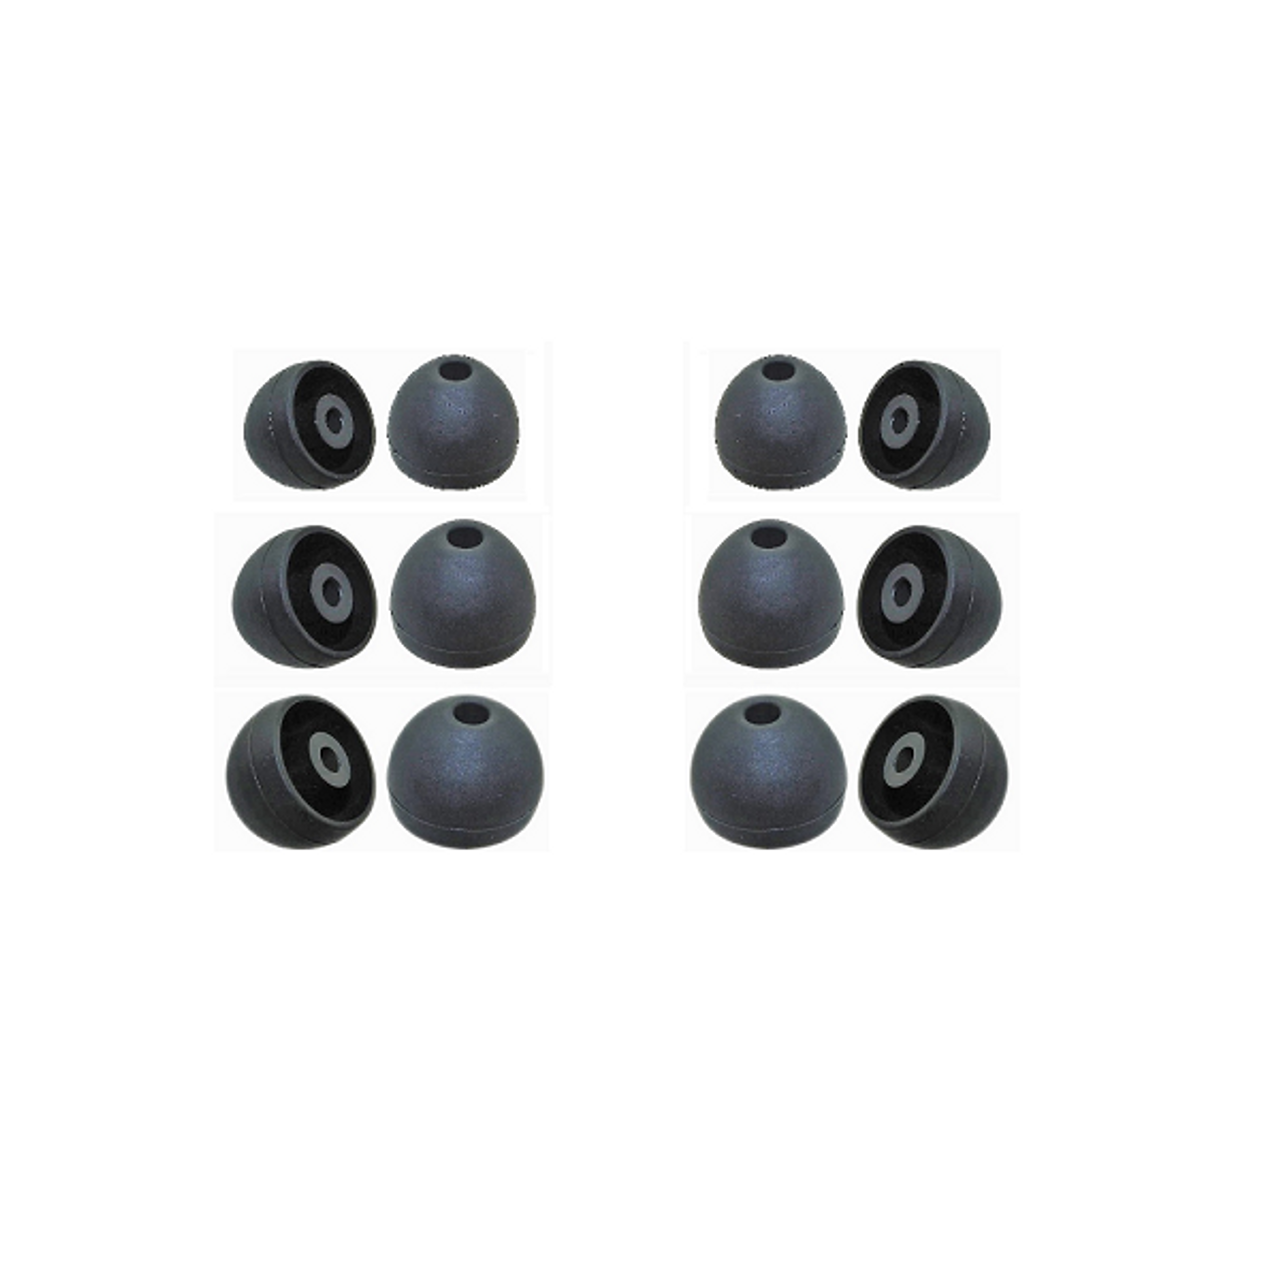 NEW 4S//4L Clear Double Flange Ear Tips for Sennheiser Momentum Free /& Neckband